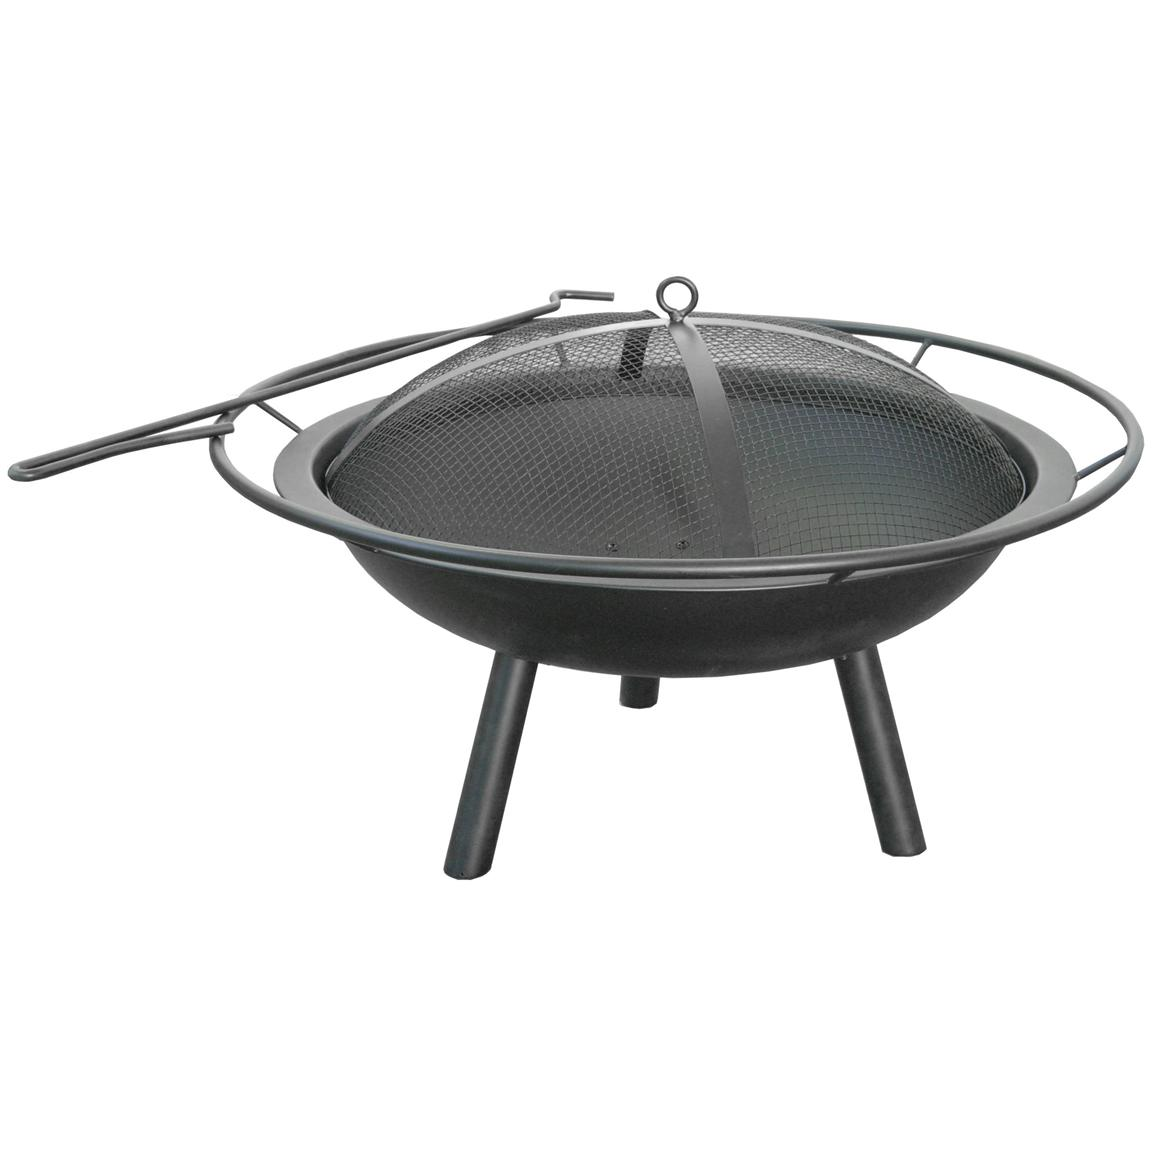 Halo Steel Bowl Firepit, Black